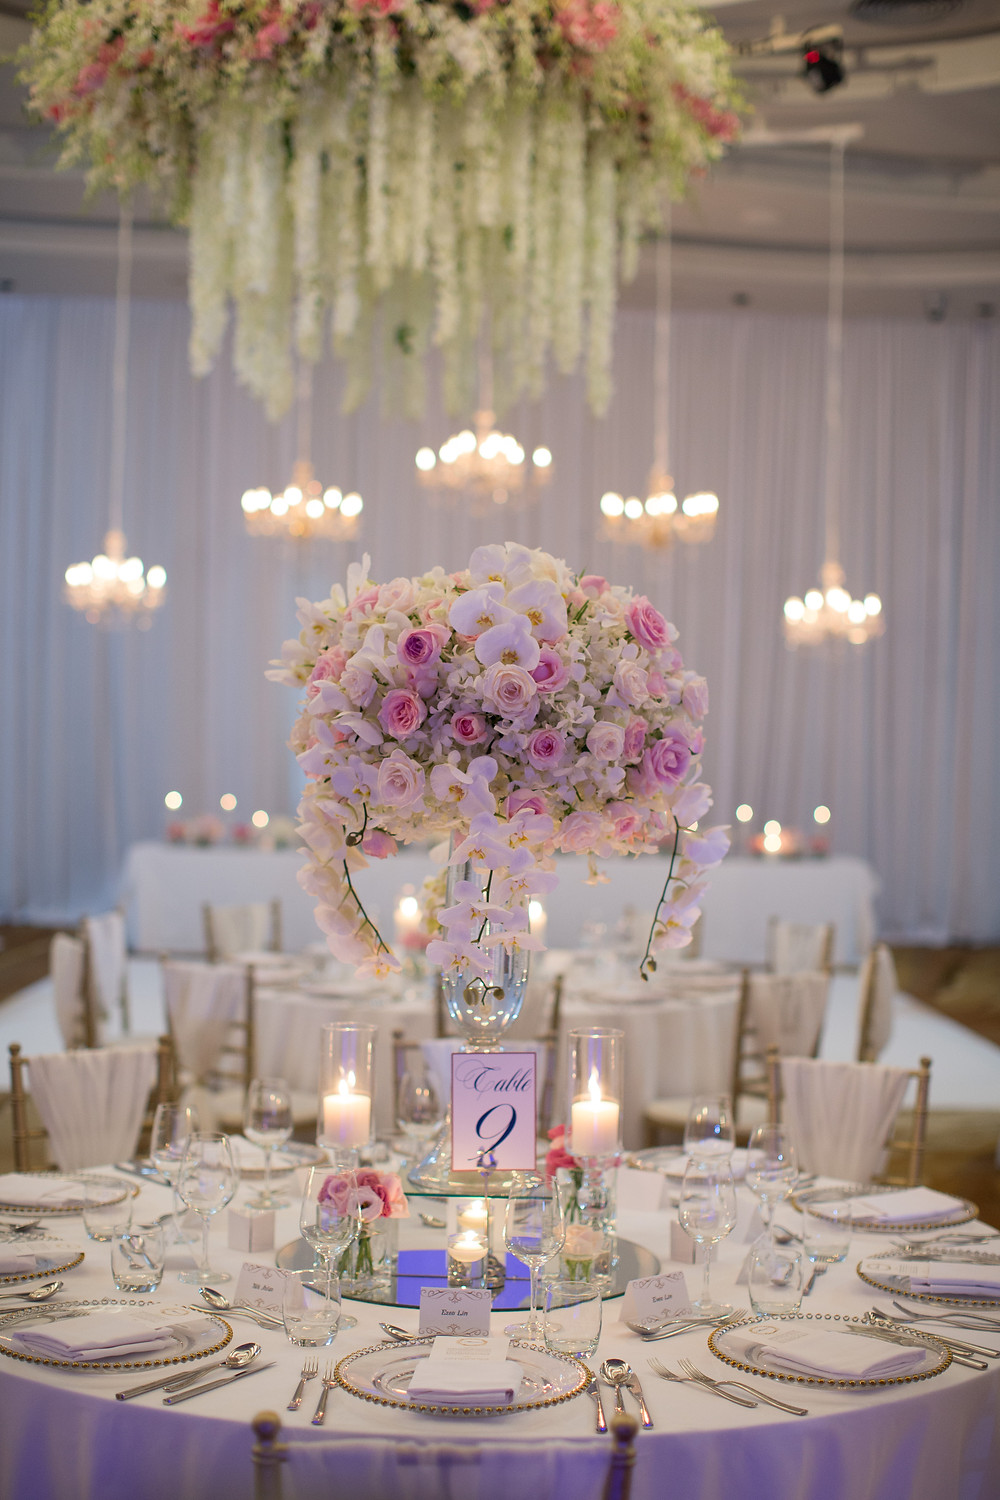 The Dinner Reception ,Flower Centerpiece and Candle light orchids, rose, flow over from the tall vase.